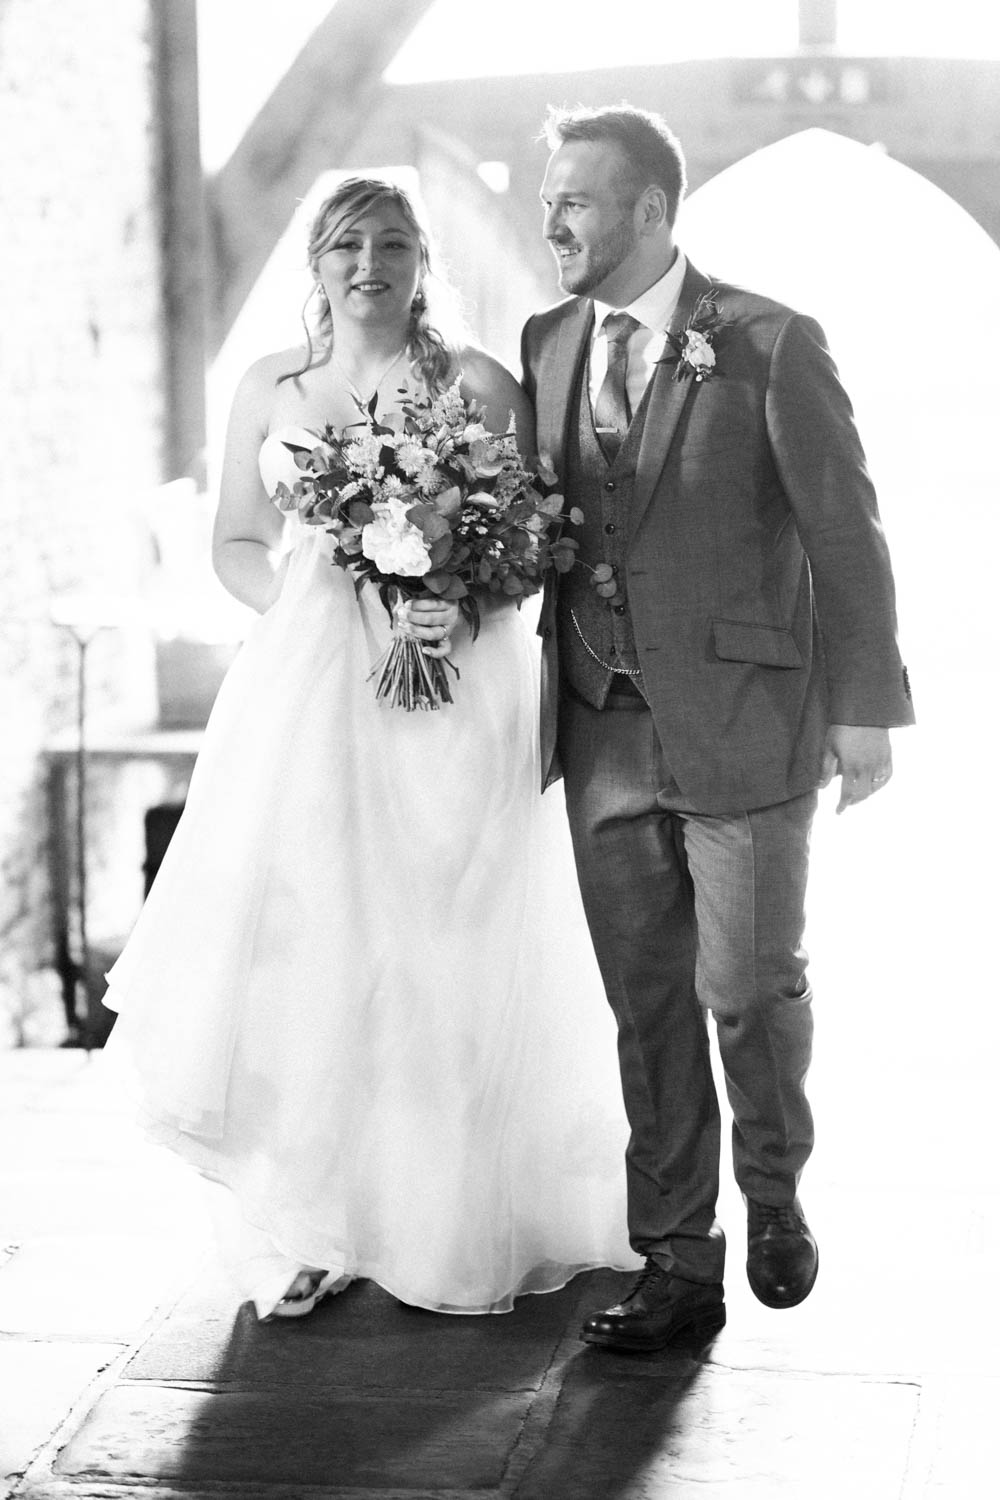 Special-Day-Photography-Cripps-Barn-Cirencester-Gloucester-Barn-Wedding-bride-and-groom-in-black-and-white.jpg